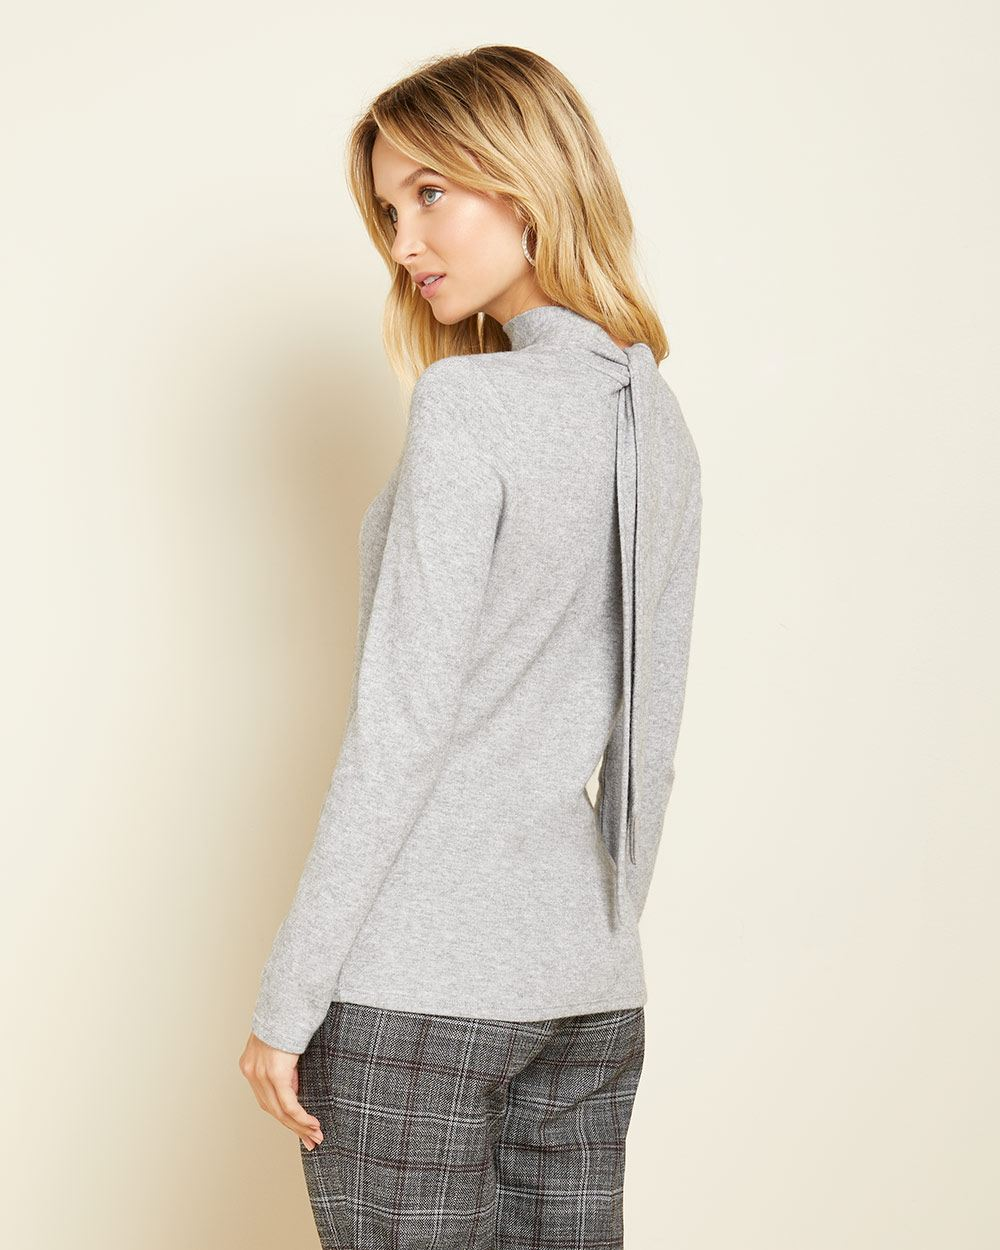 Brushed knit long sleeve t-shirt with tie mock-neck